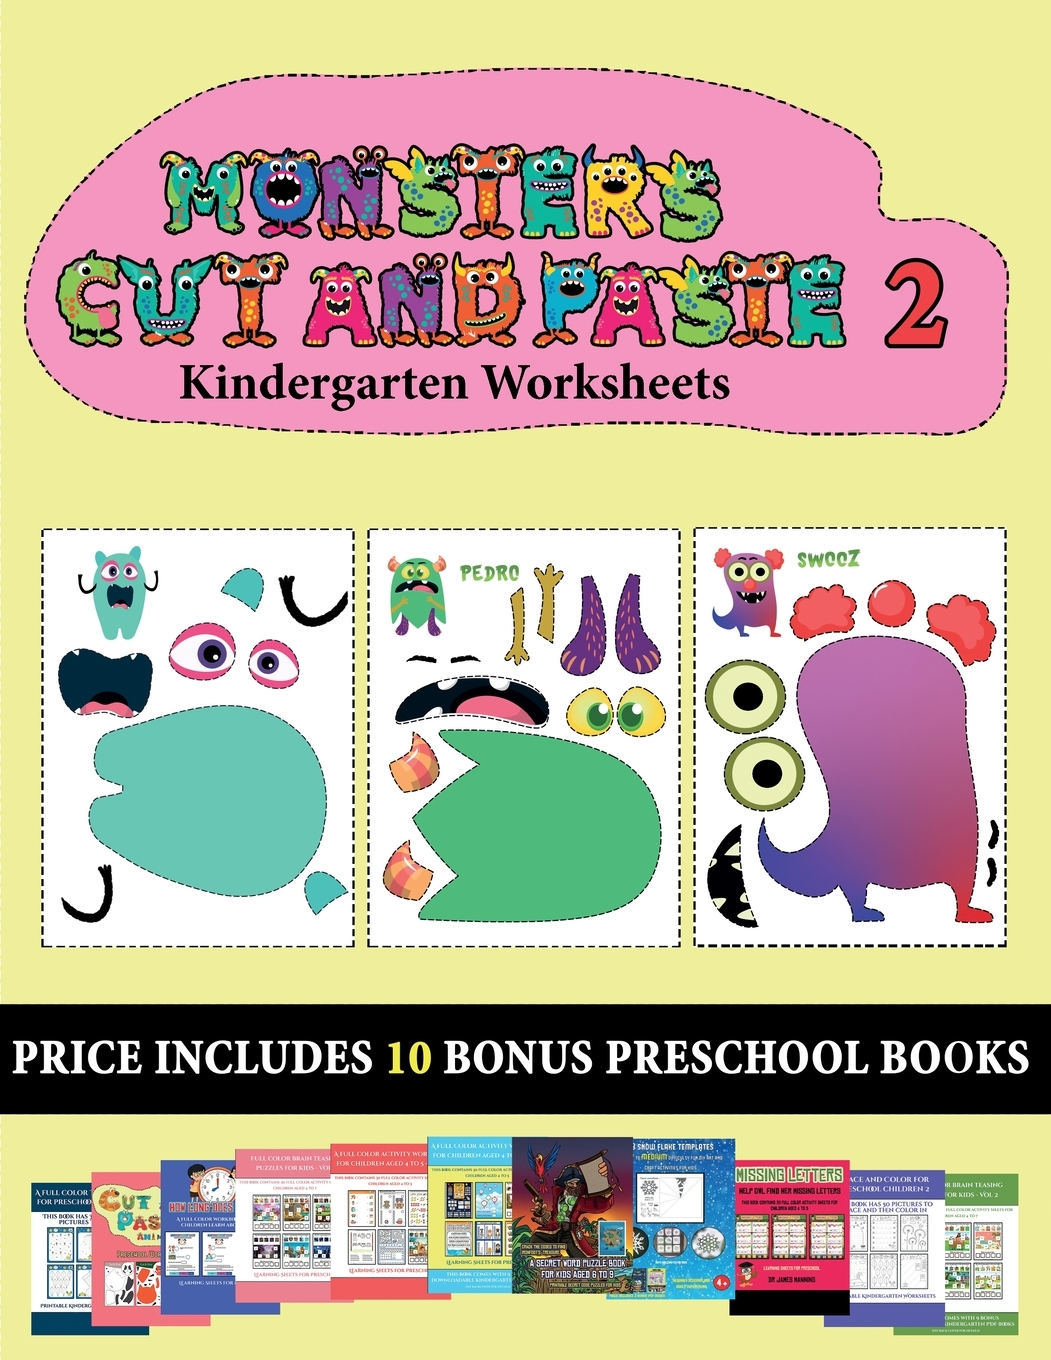 Kindergarten Worksheets Kindergarten Worksheets 20 Full